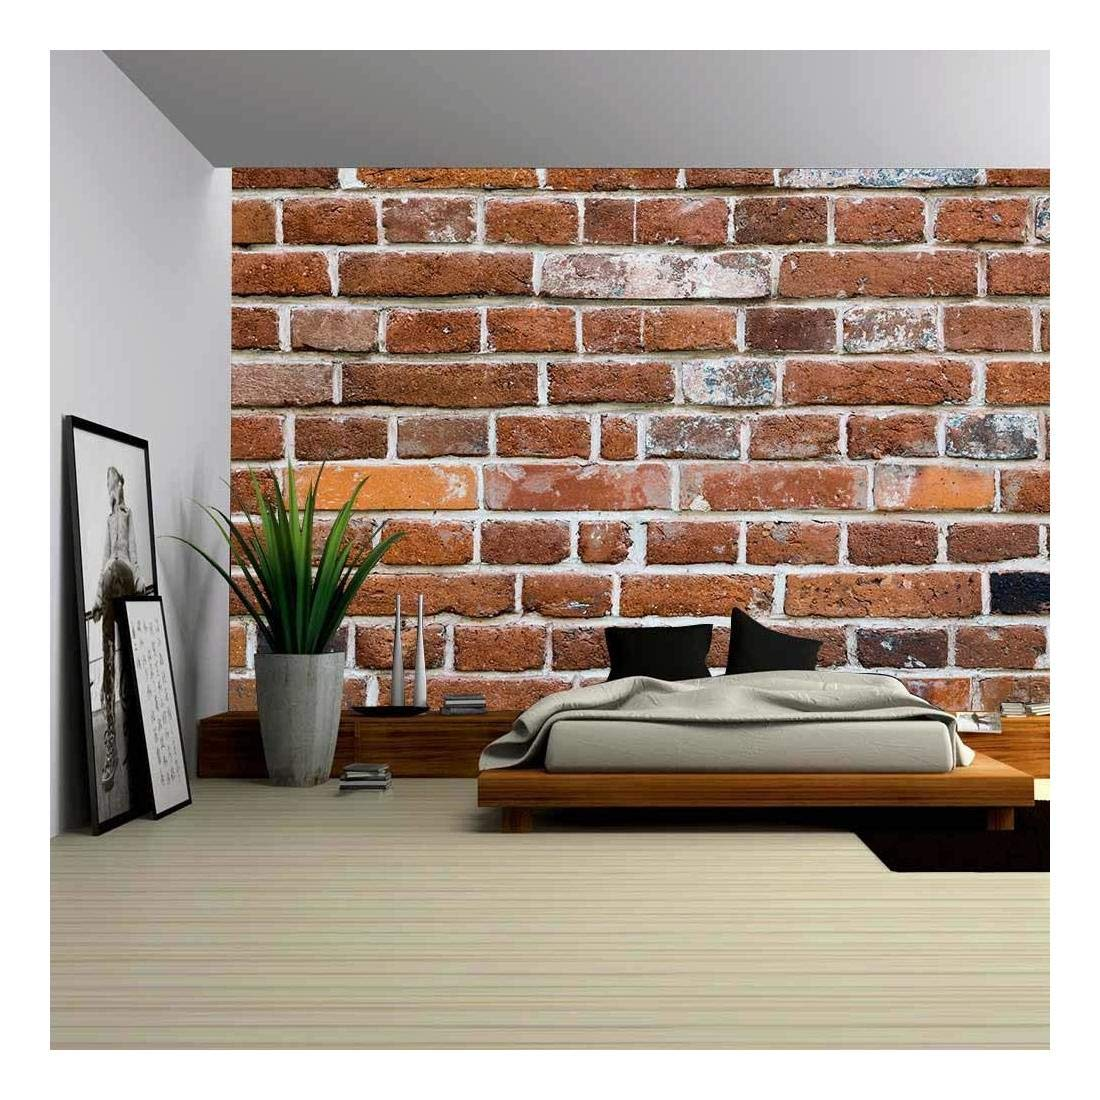 wall26 - Old Brick Wall. Texture for Background - Removable Wall Mural | Self-Adhesive Large Wallpaper - 100x144 inches